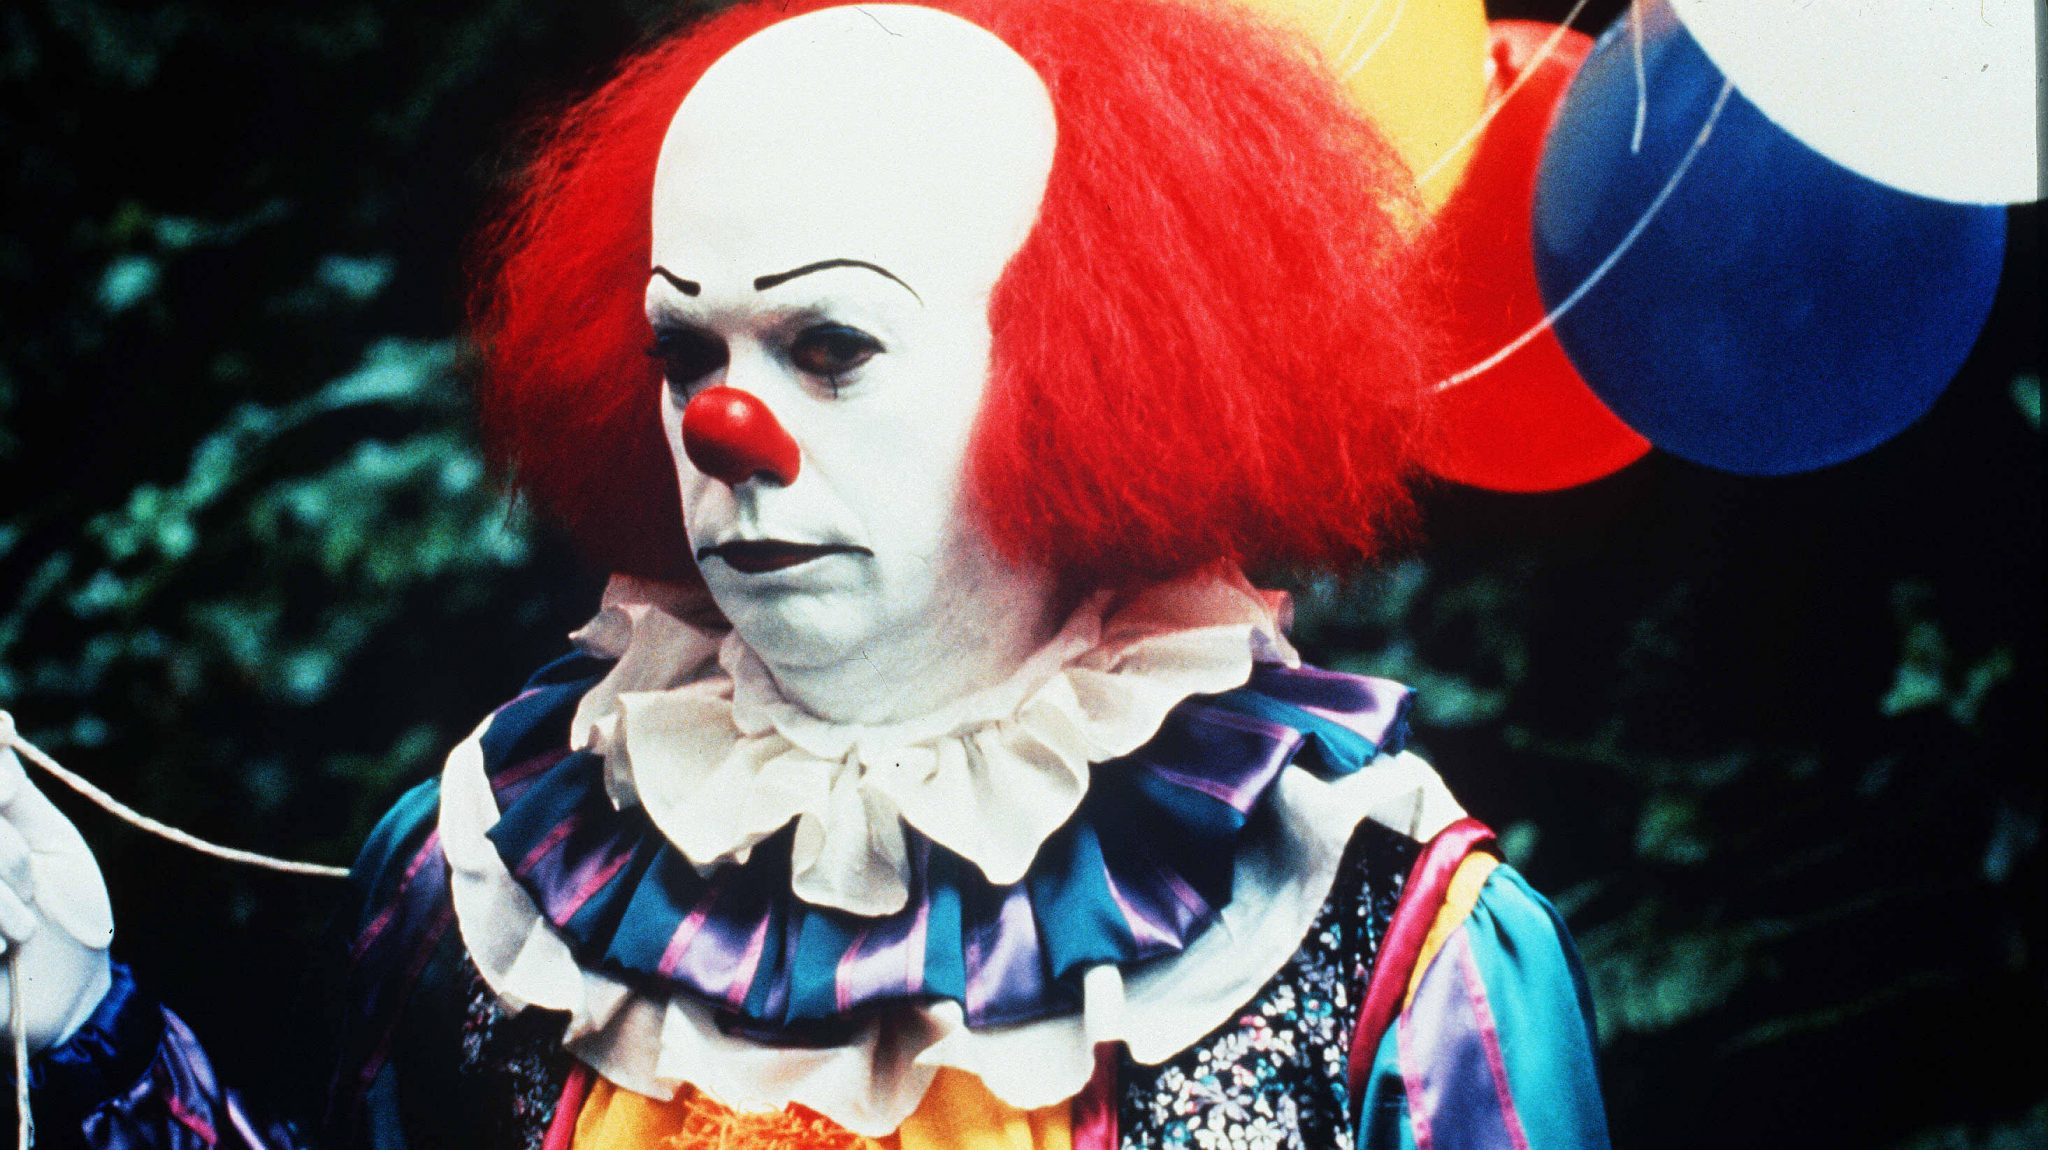 Tim Curry as Pennywise in a 1990 TV adaptation of Stephen King's It. Come on, tell us you aren't just a little creeped out.